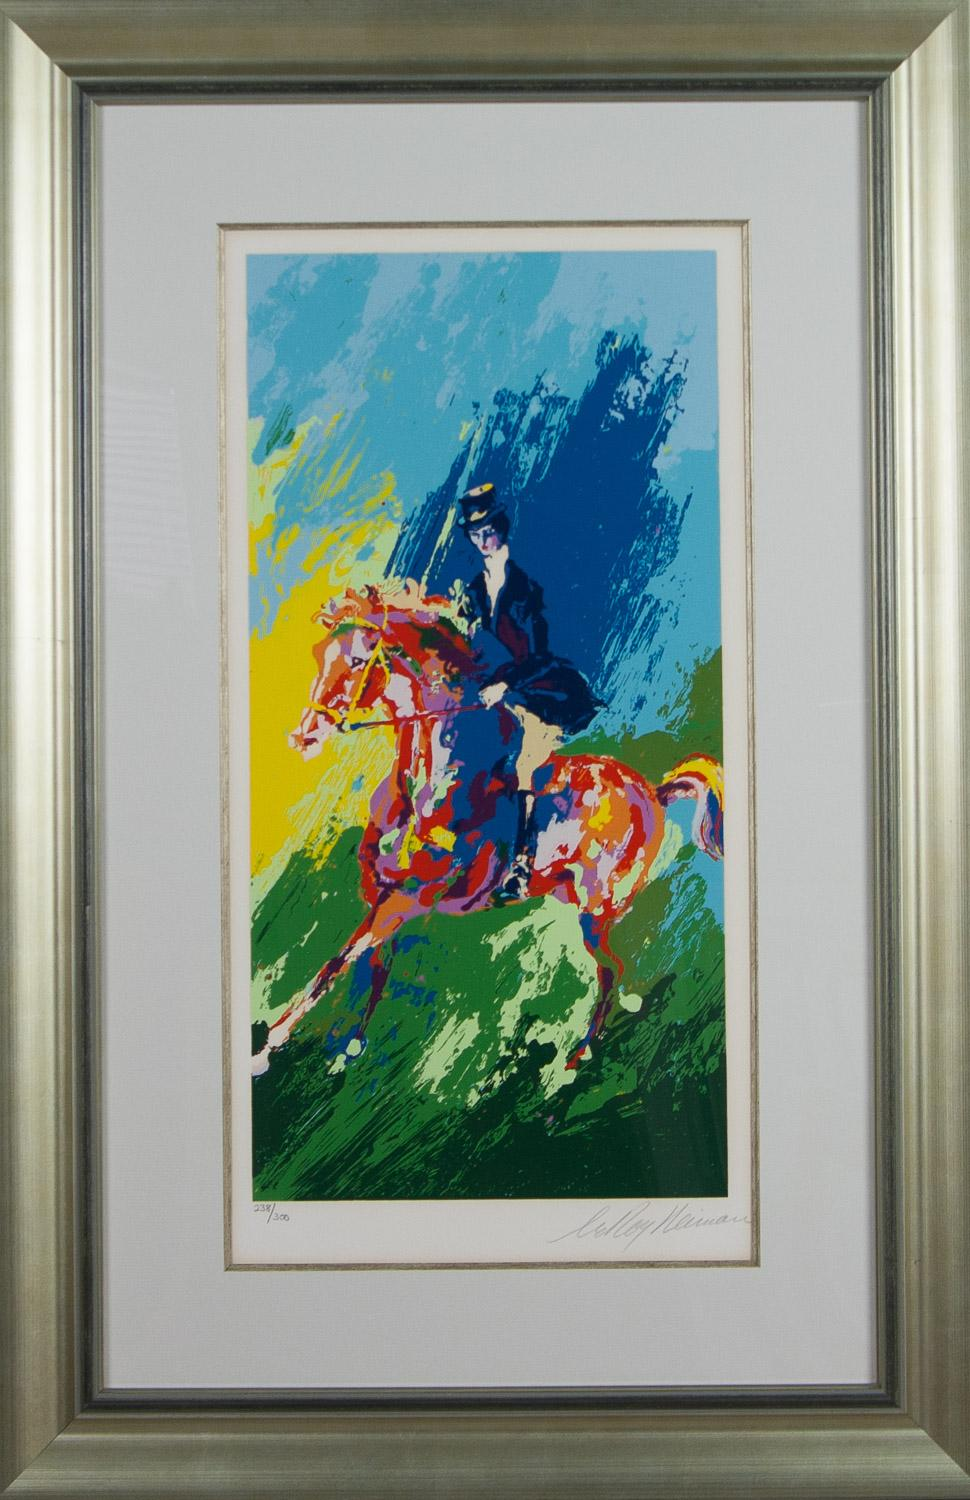 The Equestrian lithograph by Leroy Neiman